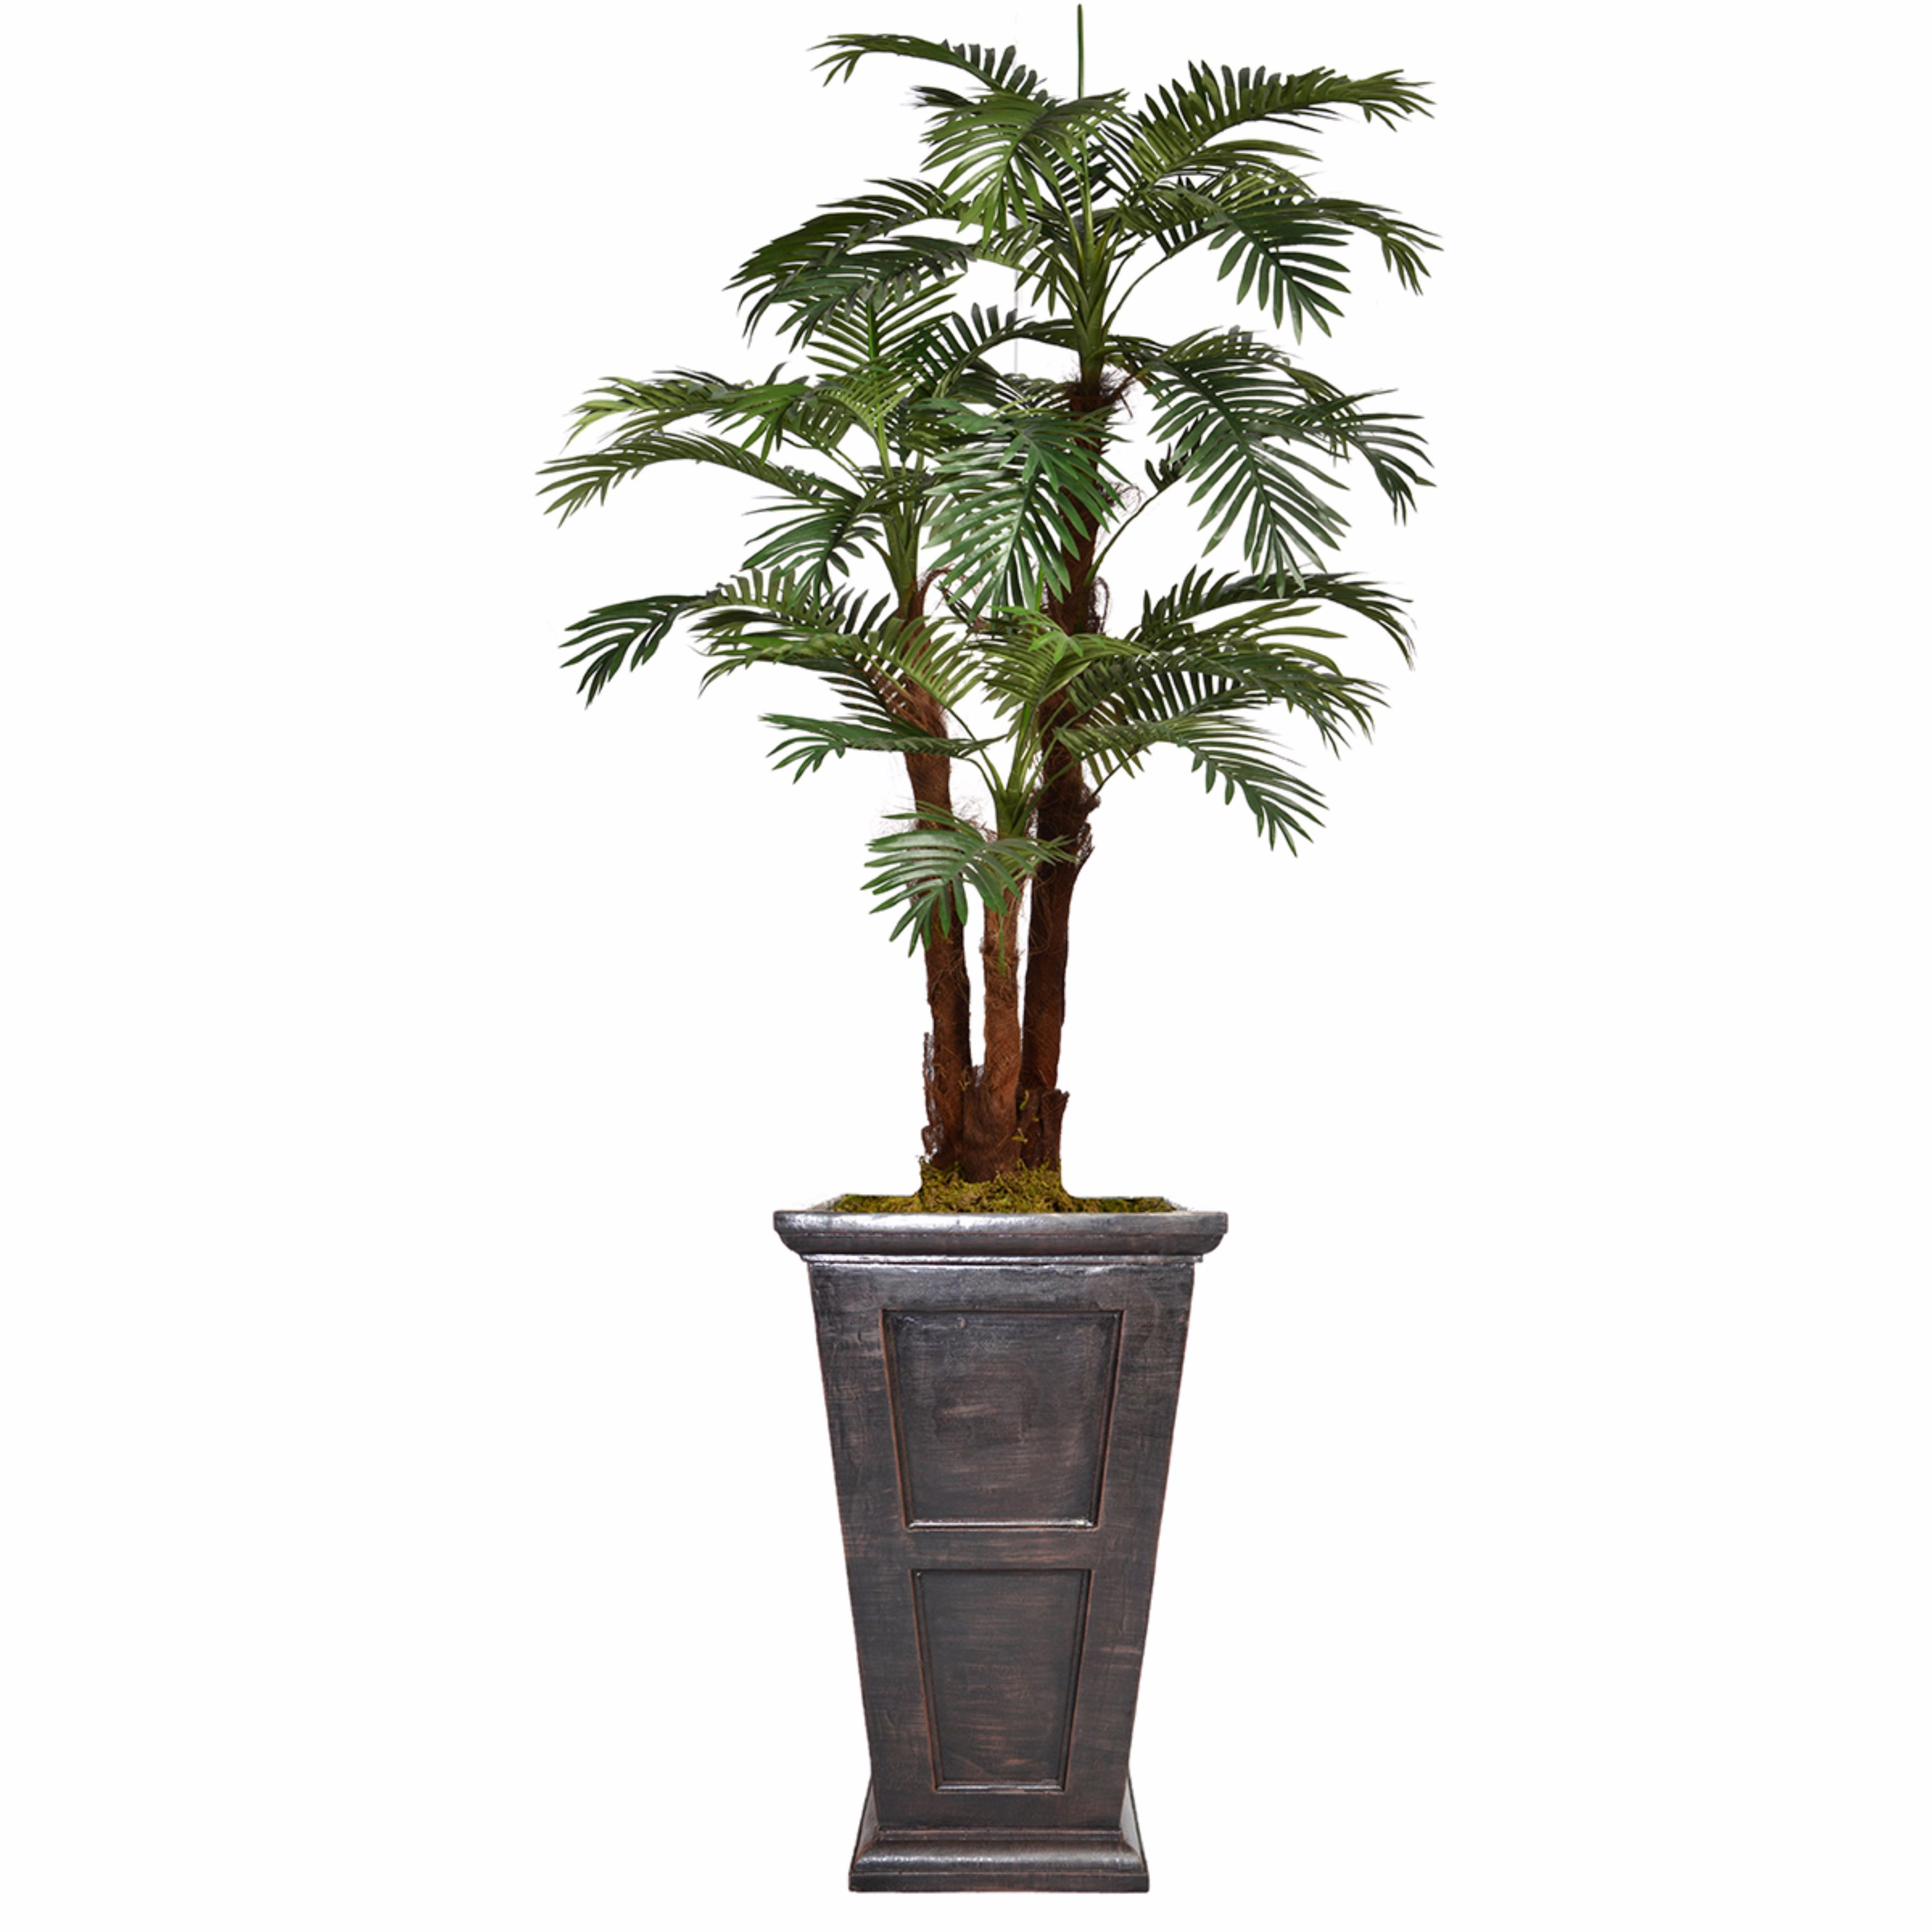 """84.8"""" Tall Palm Tree Artificial Decorative Indoor/ Outdoor Faux with Burlap Kit and Fiberstone Planter By Minx NY"""